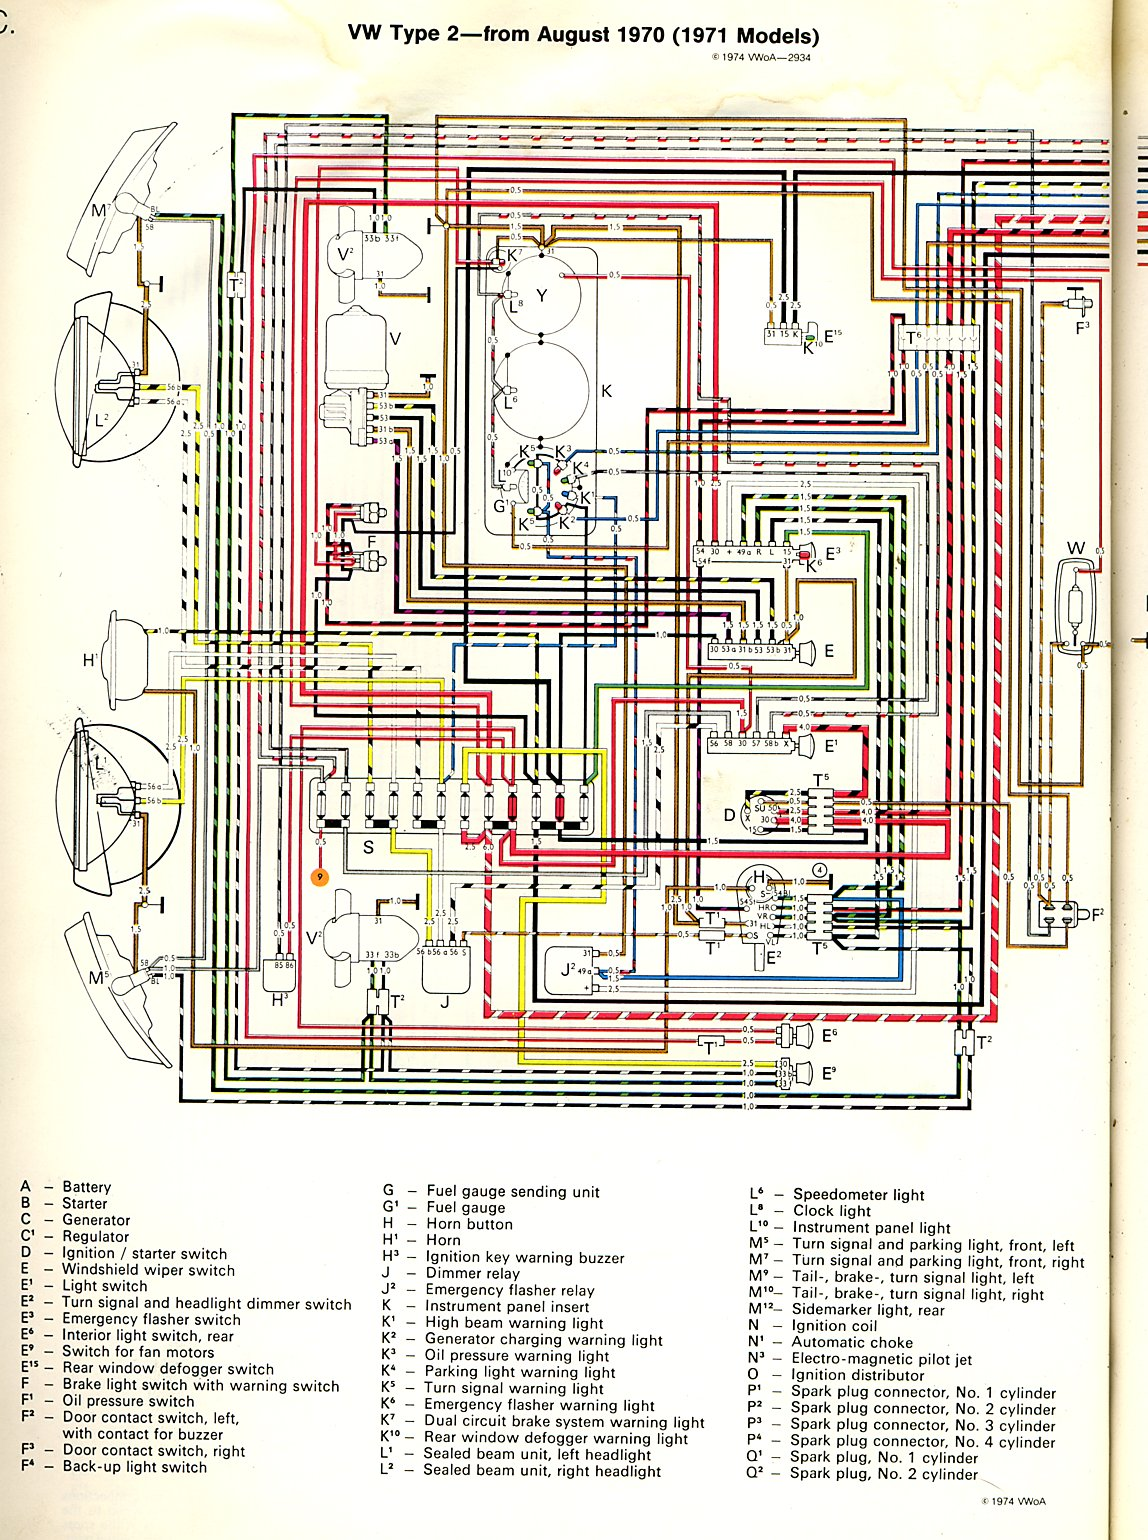 wire diagram 1979 vw van thesamba.com :: type 2 wiring diagrams 1979 vw wiring harness